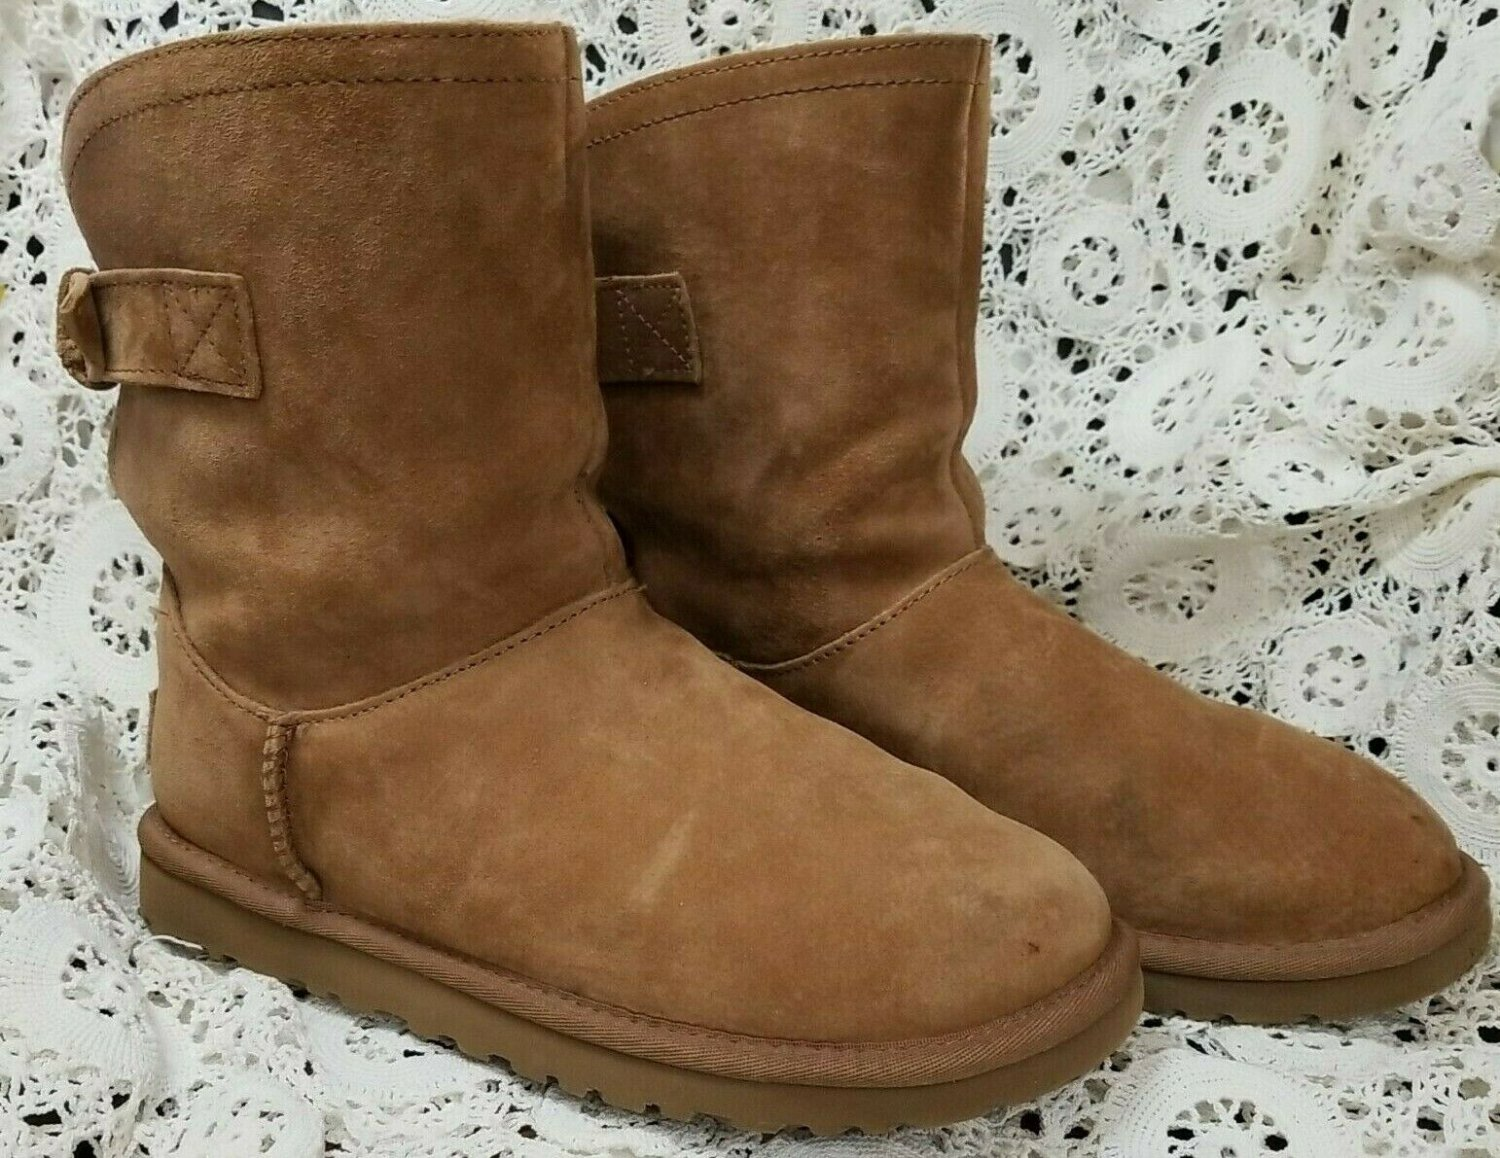 UGG Australia Ladies Boots Size 6 US Brown Remora Back Buckle